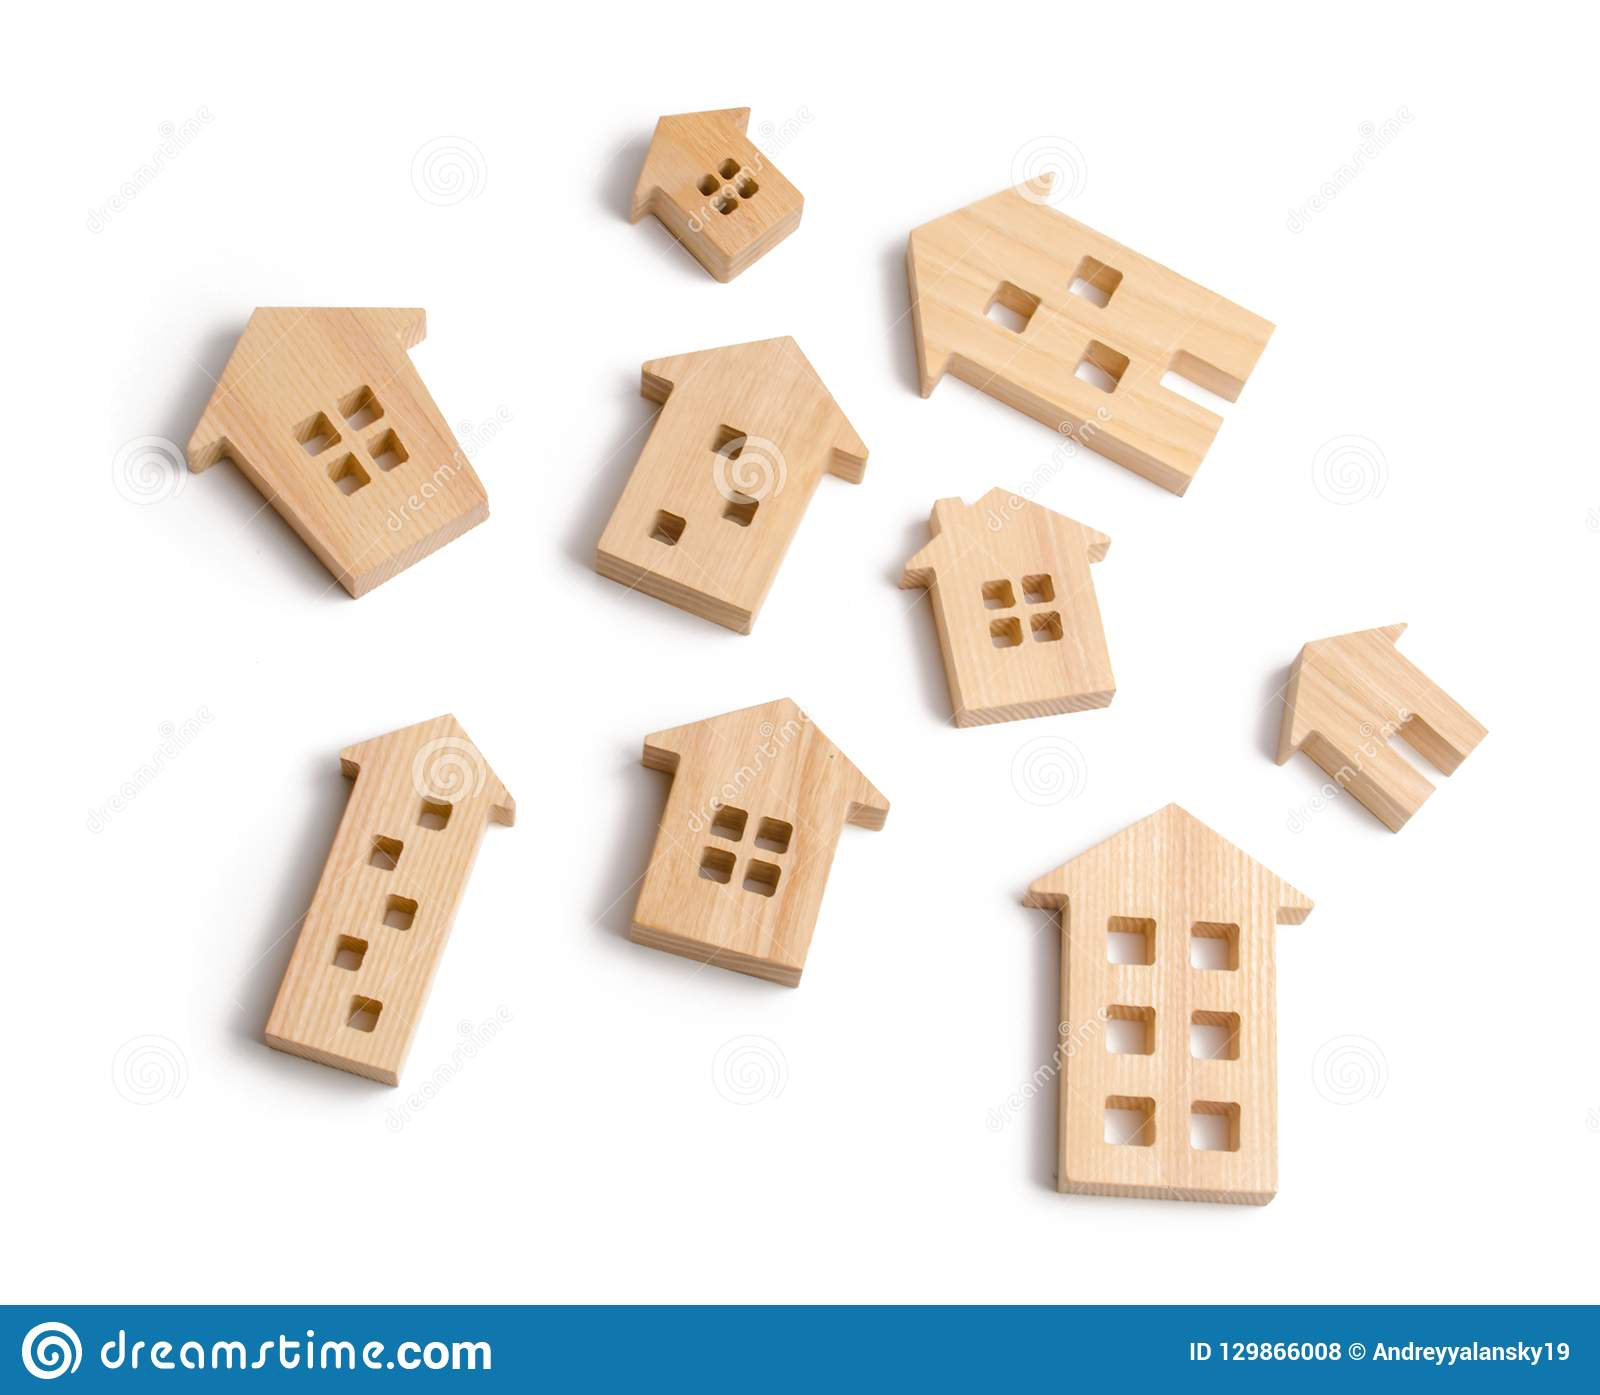 Wooden houses on a white background. The concept of rising prices for housing or rent. Growing demand for housing and real estate.